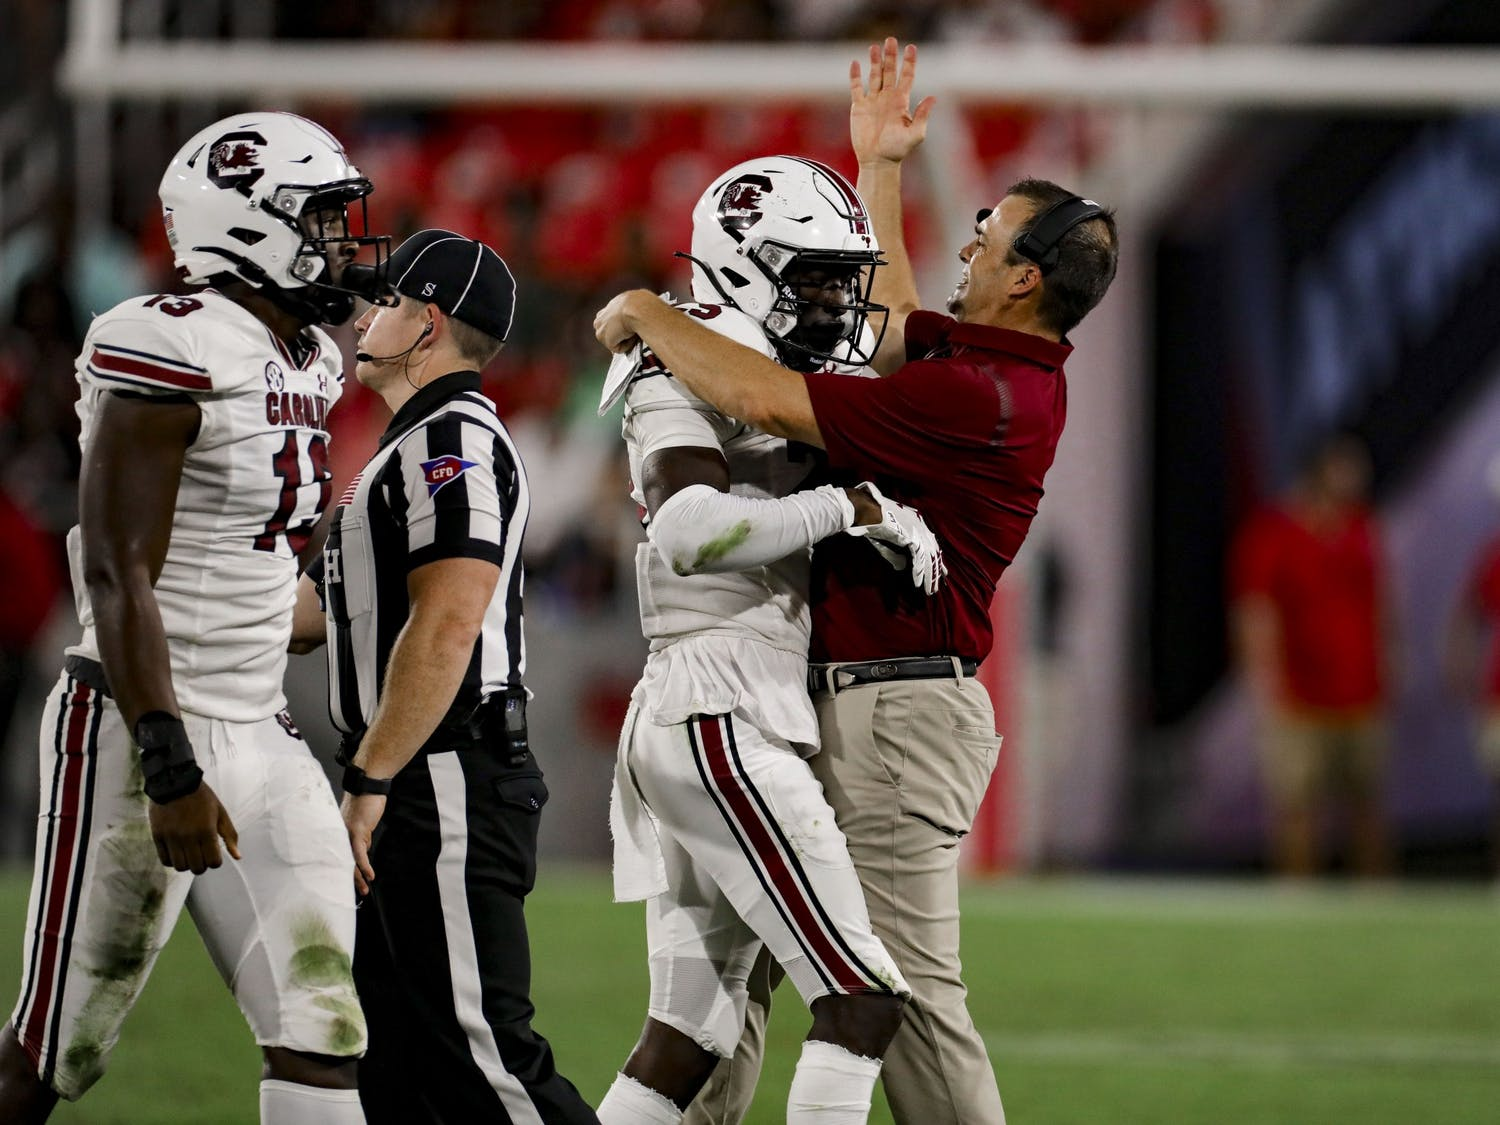 Head coach Shane Beamer celebrates a defensive stop by redshirt freshman defensive back O'Donnell Fortune in South Carolina's game against Georgia on Sept. 18, 2021.